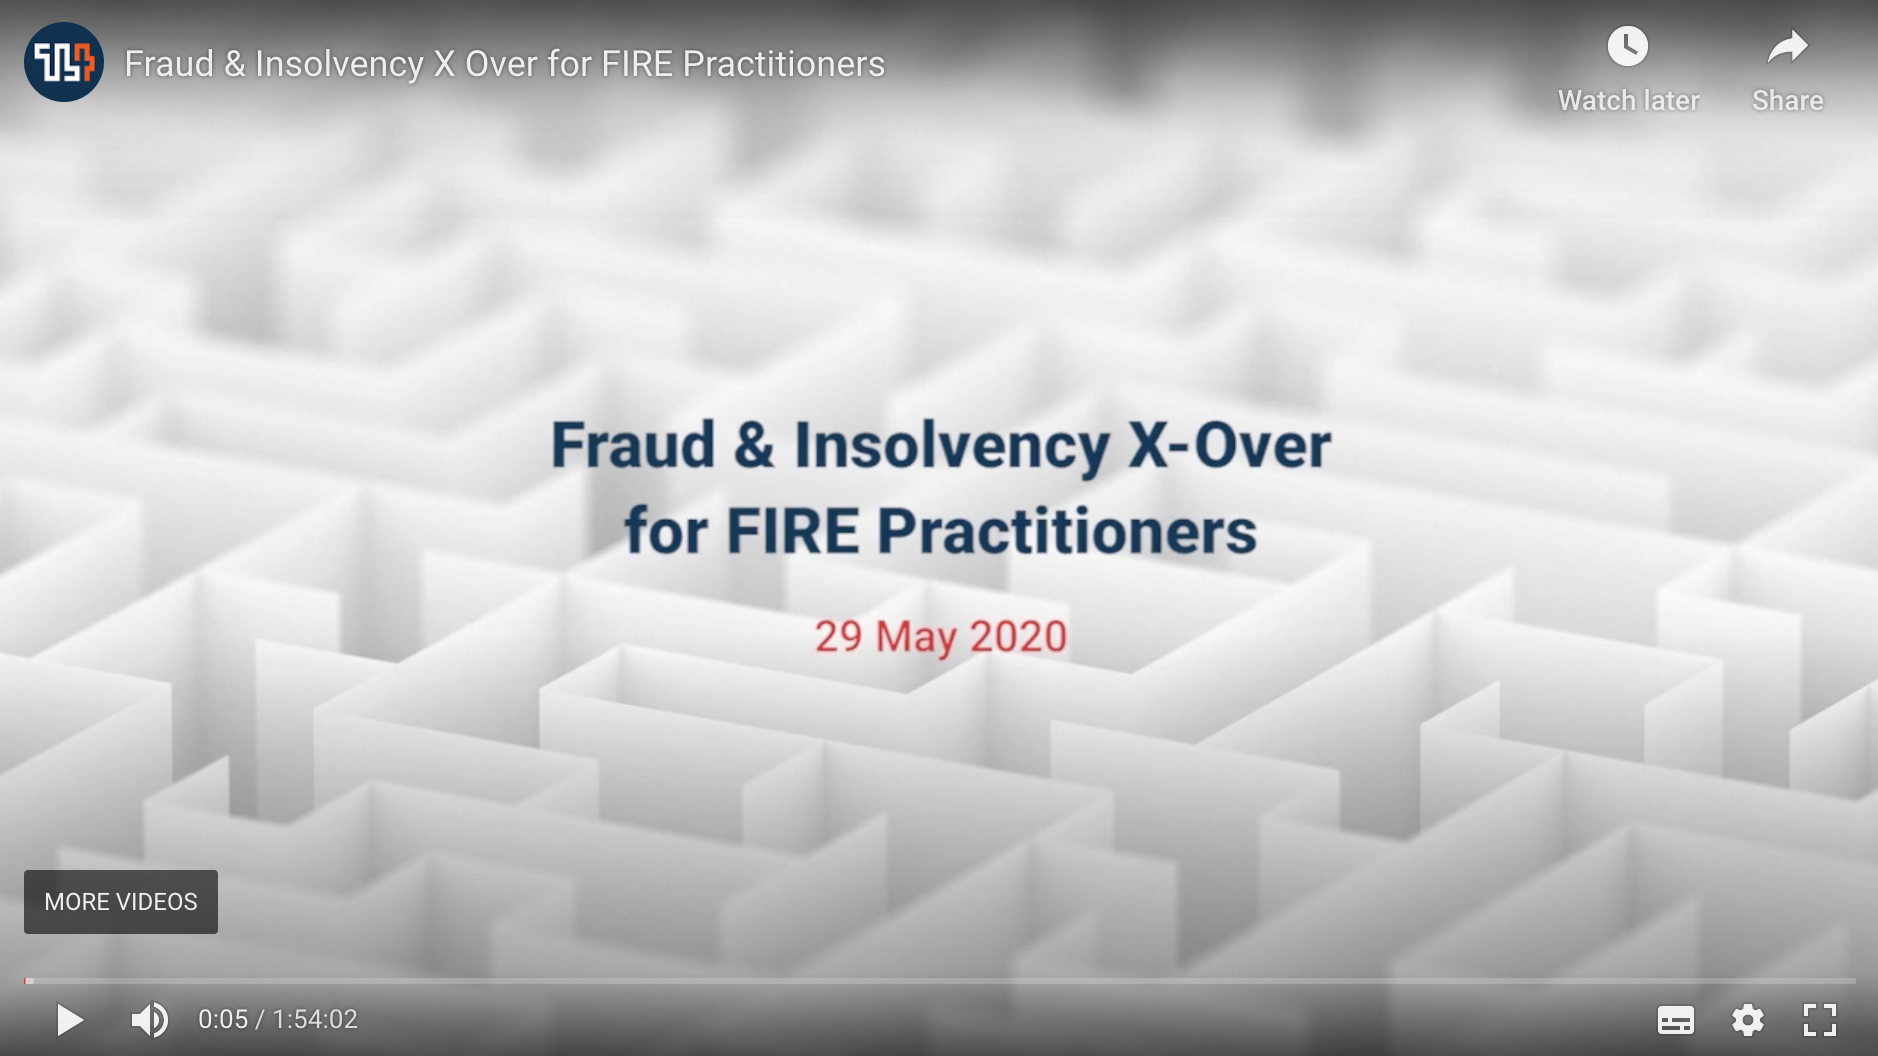 Fraud & Insolvency X-Over for FIRE Practitioners